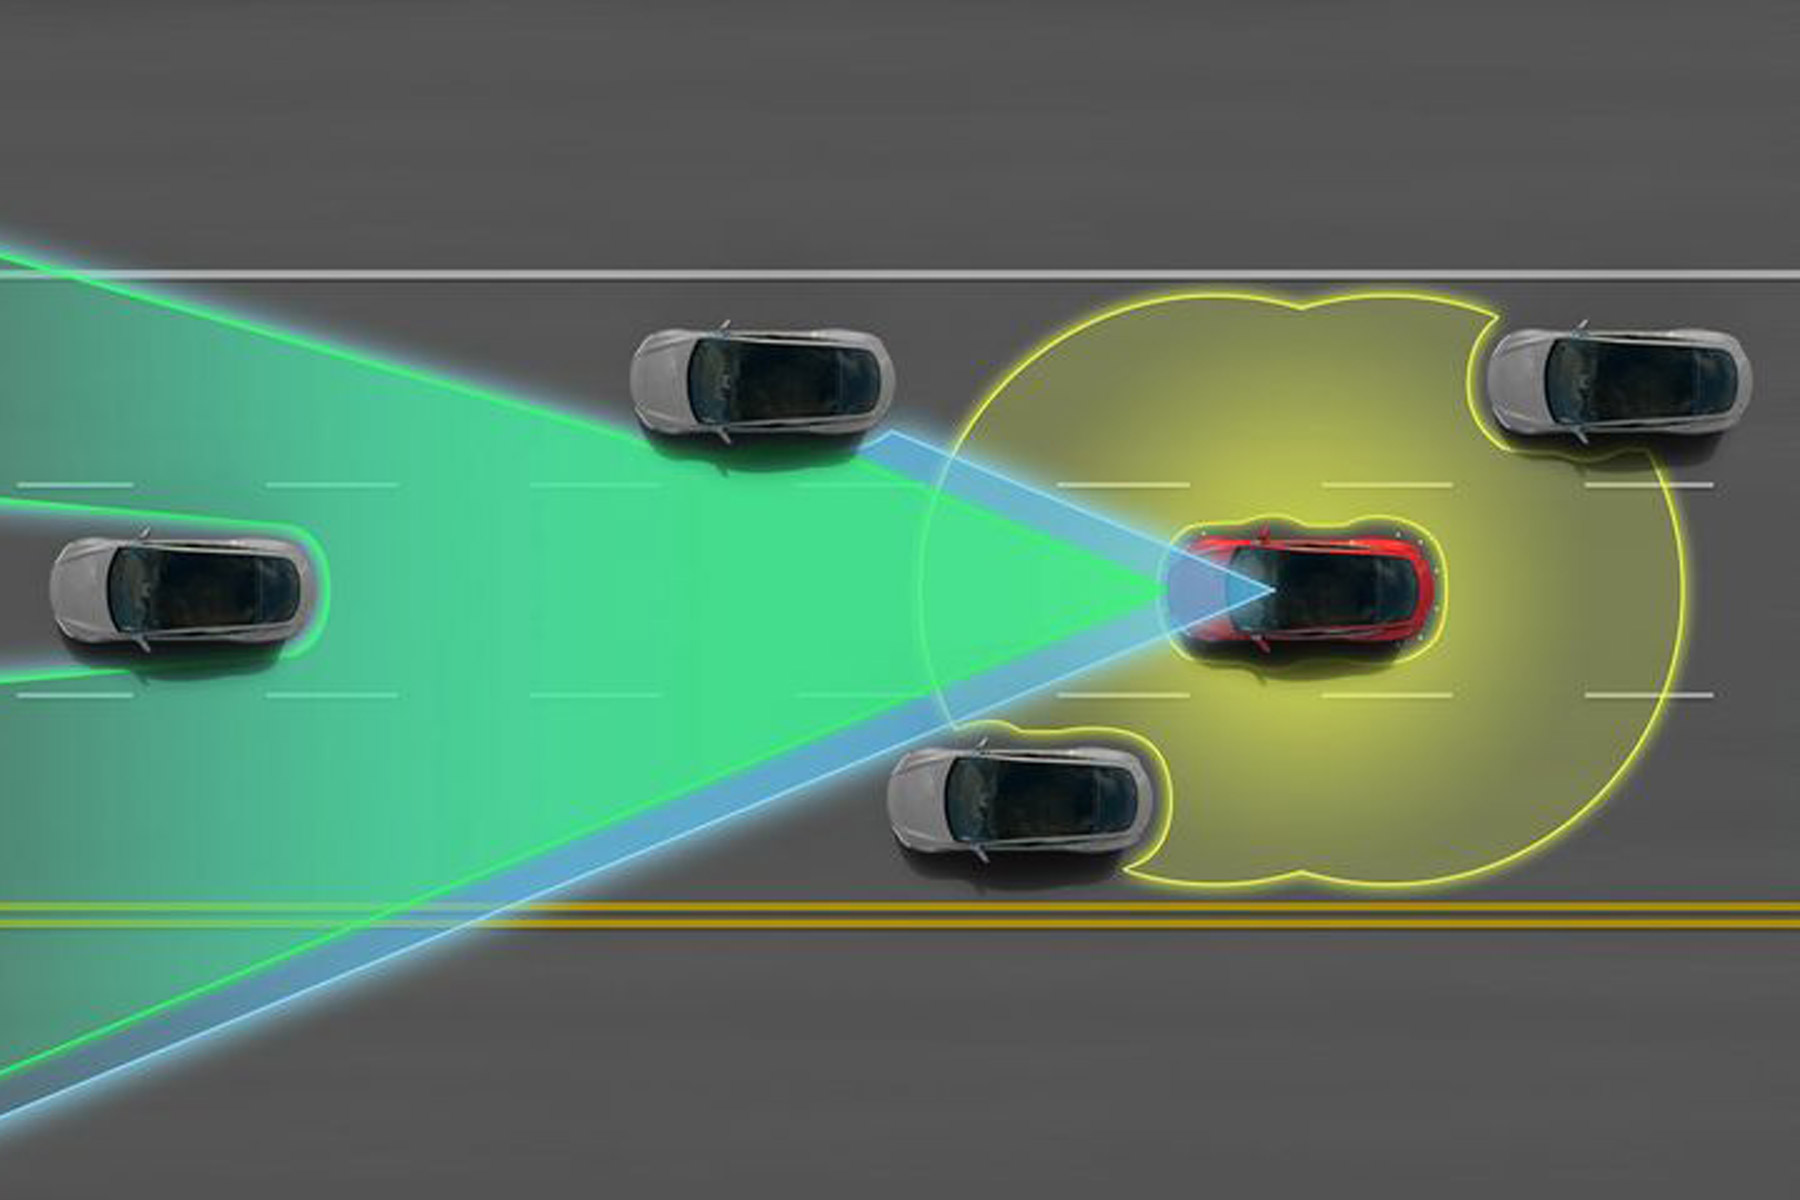 So what can Tesla's Autopilot do?